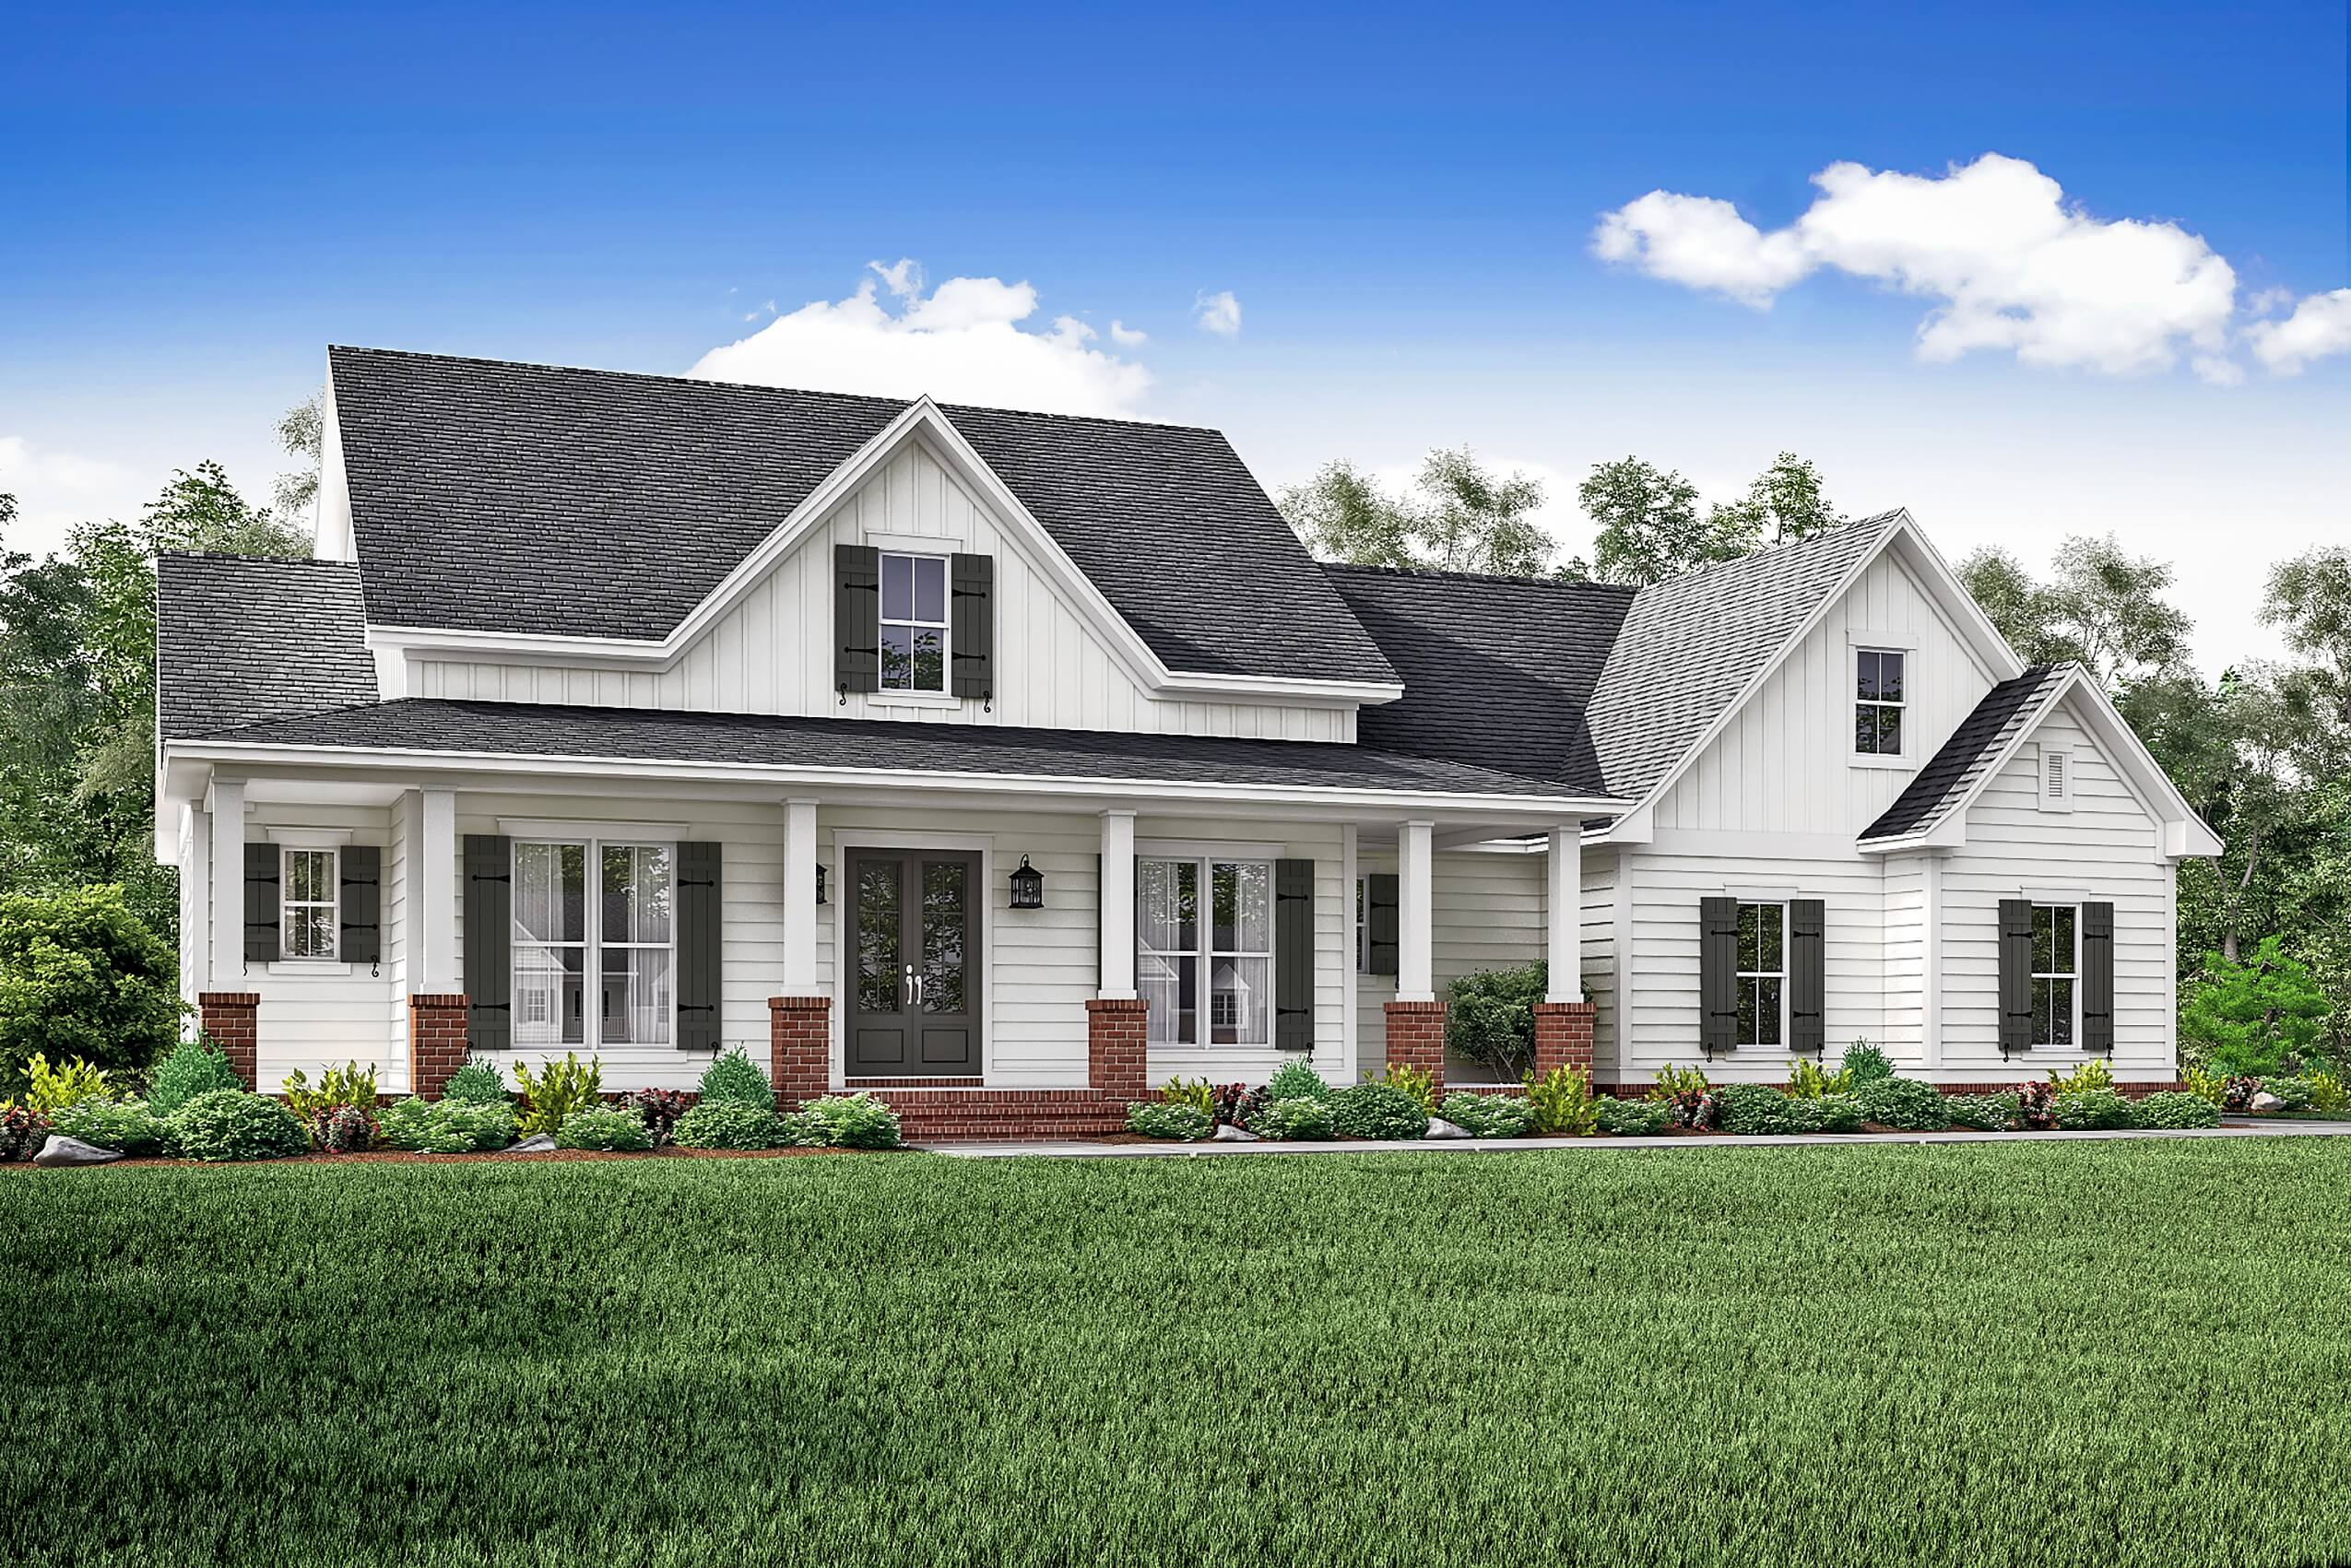 3 Bedrm, 2466 Sq Ft Country House Plan #142-1166